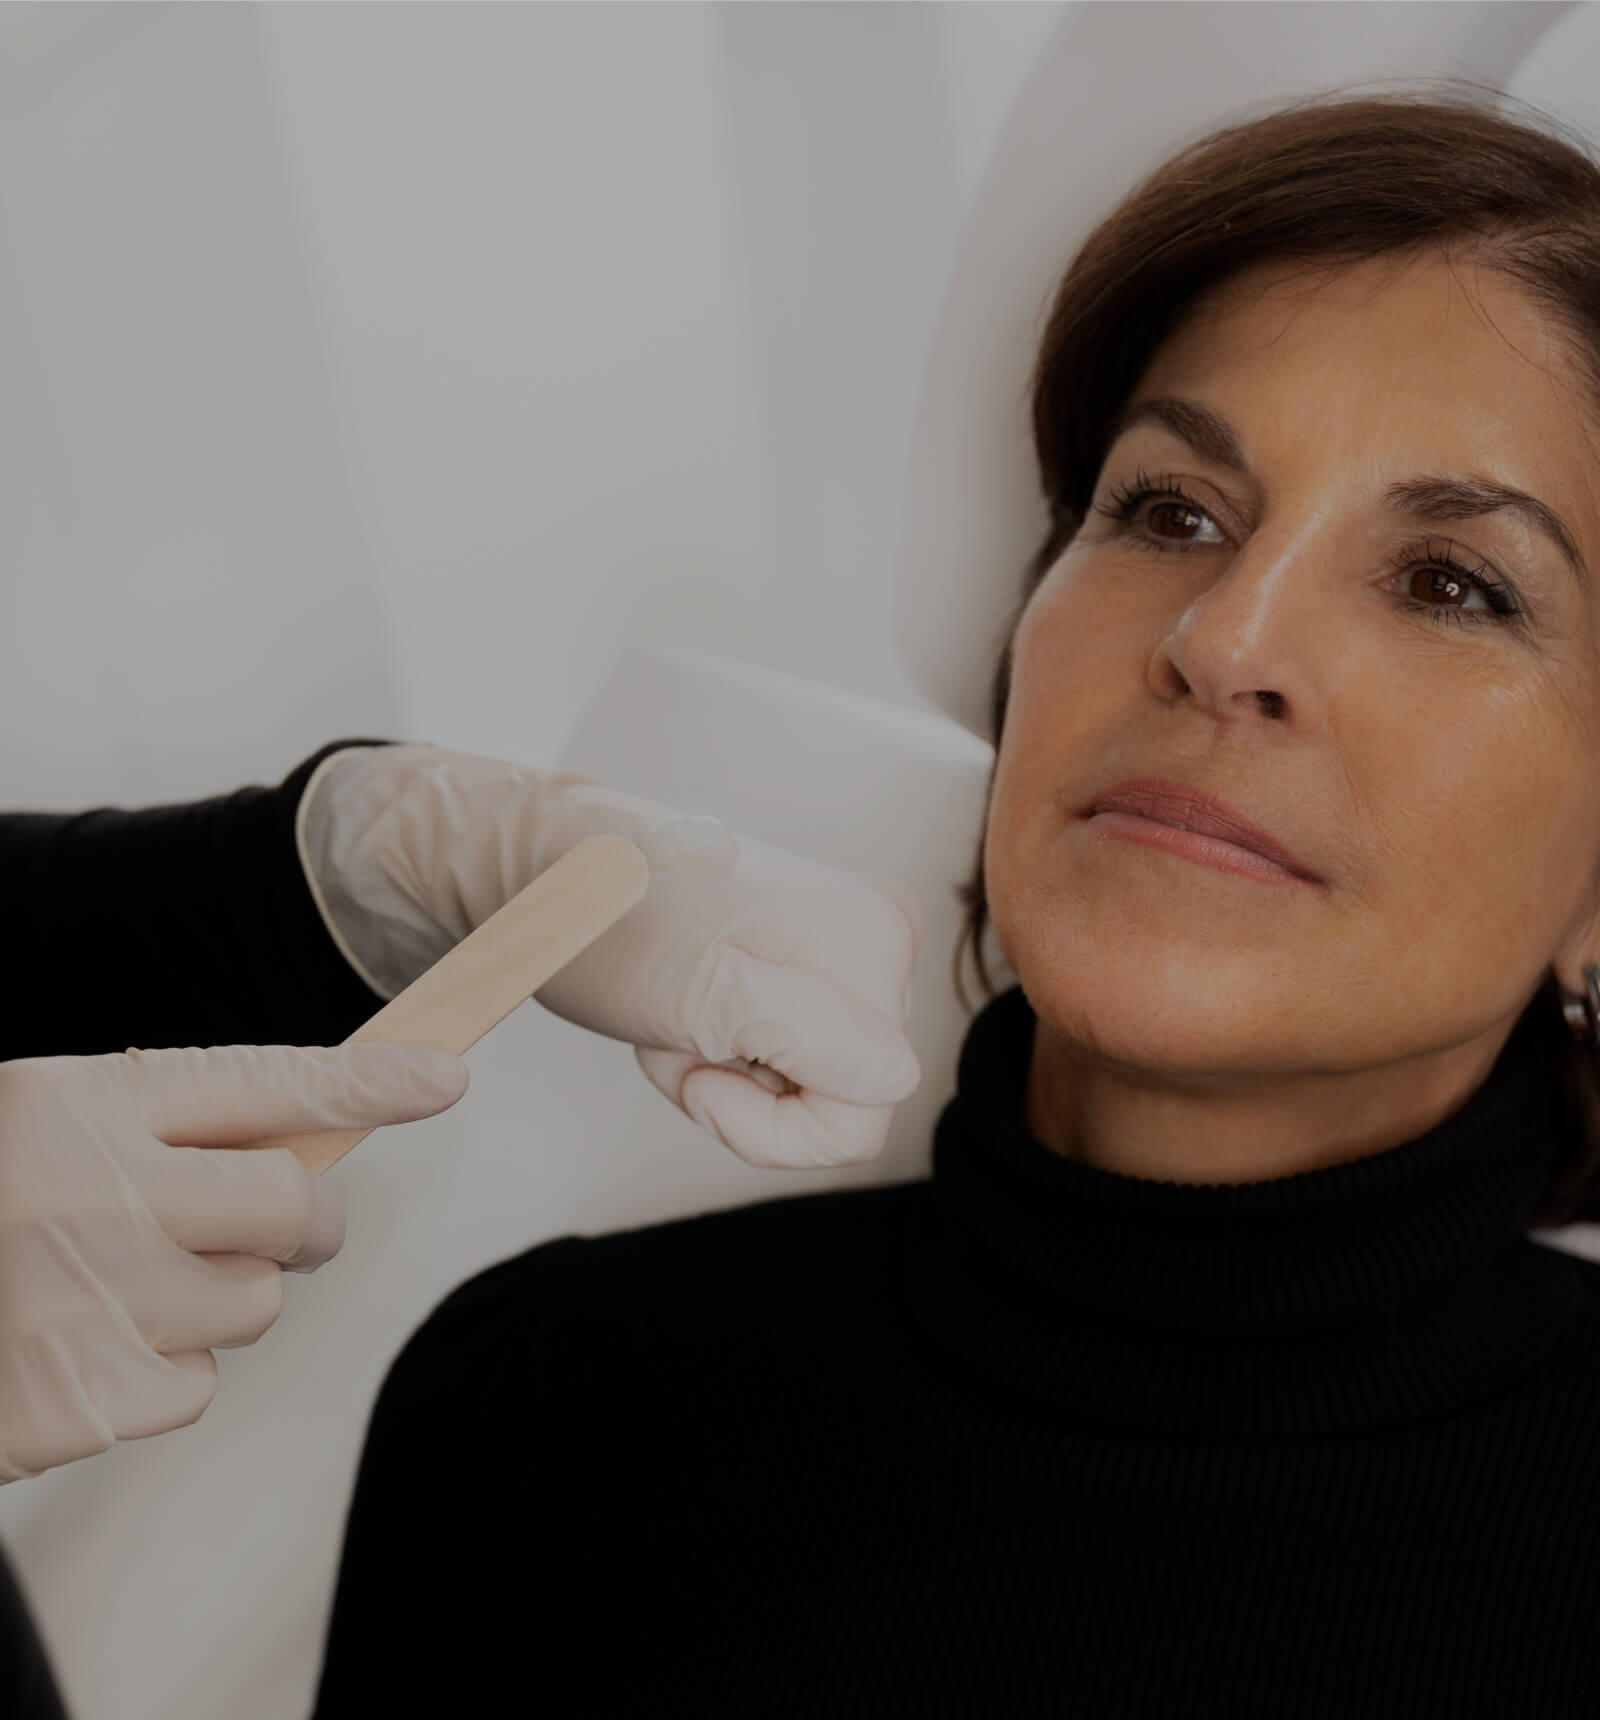 A Clinique Chloé technician applying numbing cream to a patient's face with a stick before a fractional laser treatment